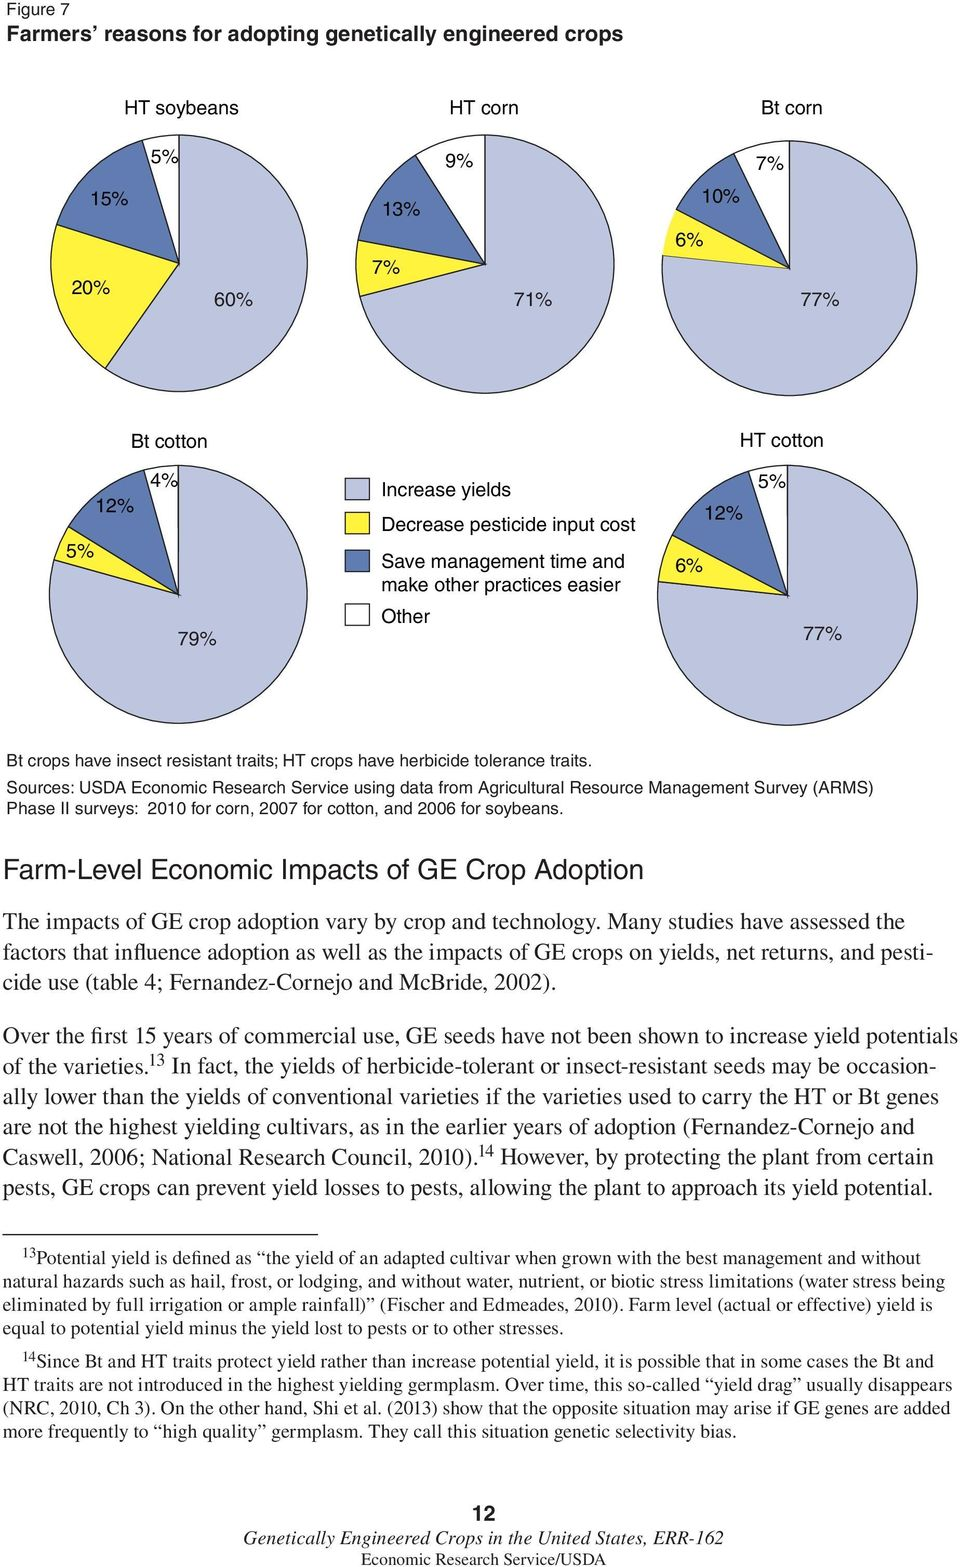 Sources: USDA Economic Research Service using data from Agricultural Resource Management Survey (ARMS) Phase II surveys: 2010 for corn, 2007 for cotton, and 2006 for soybeans.